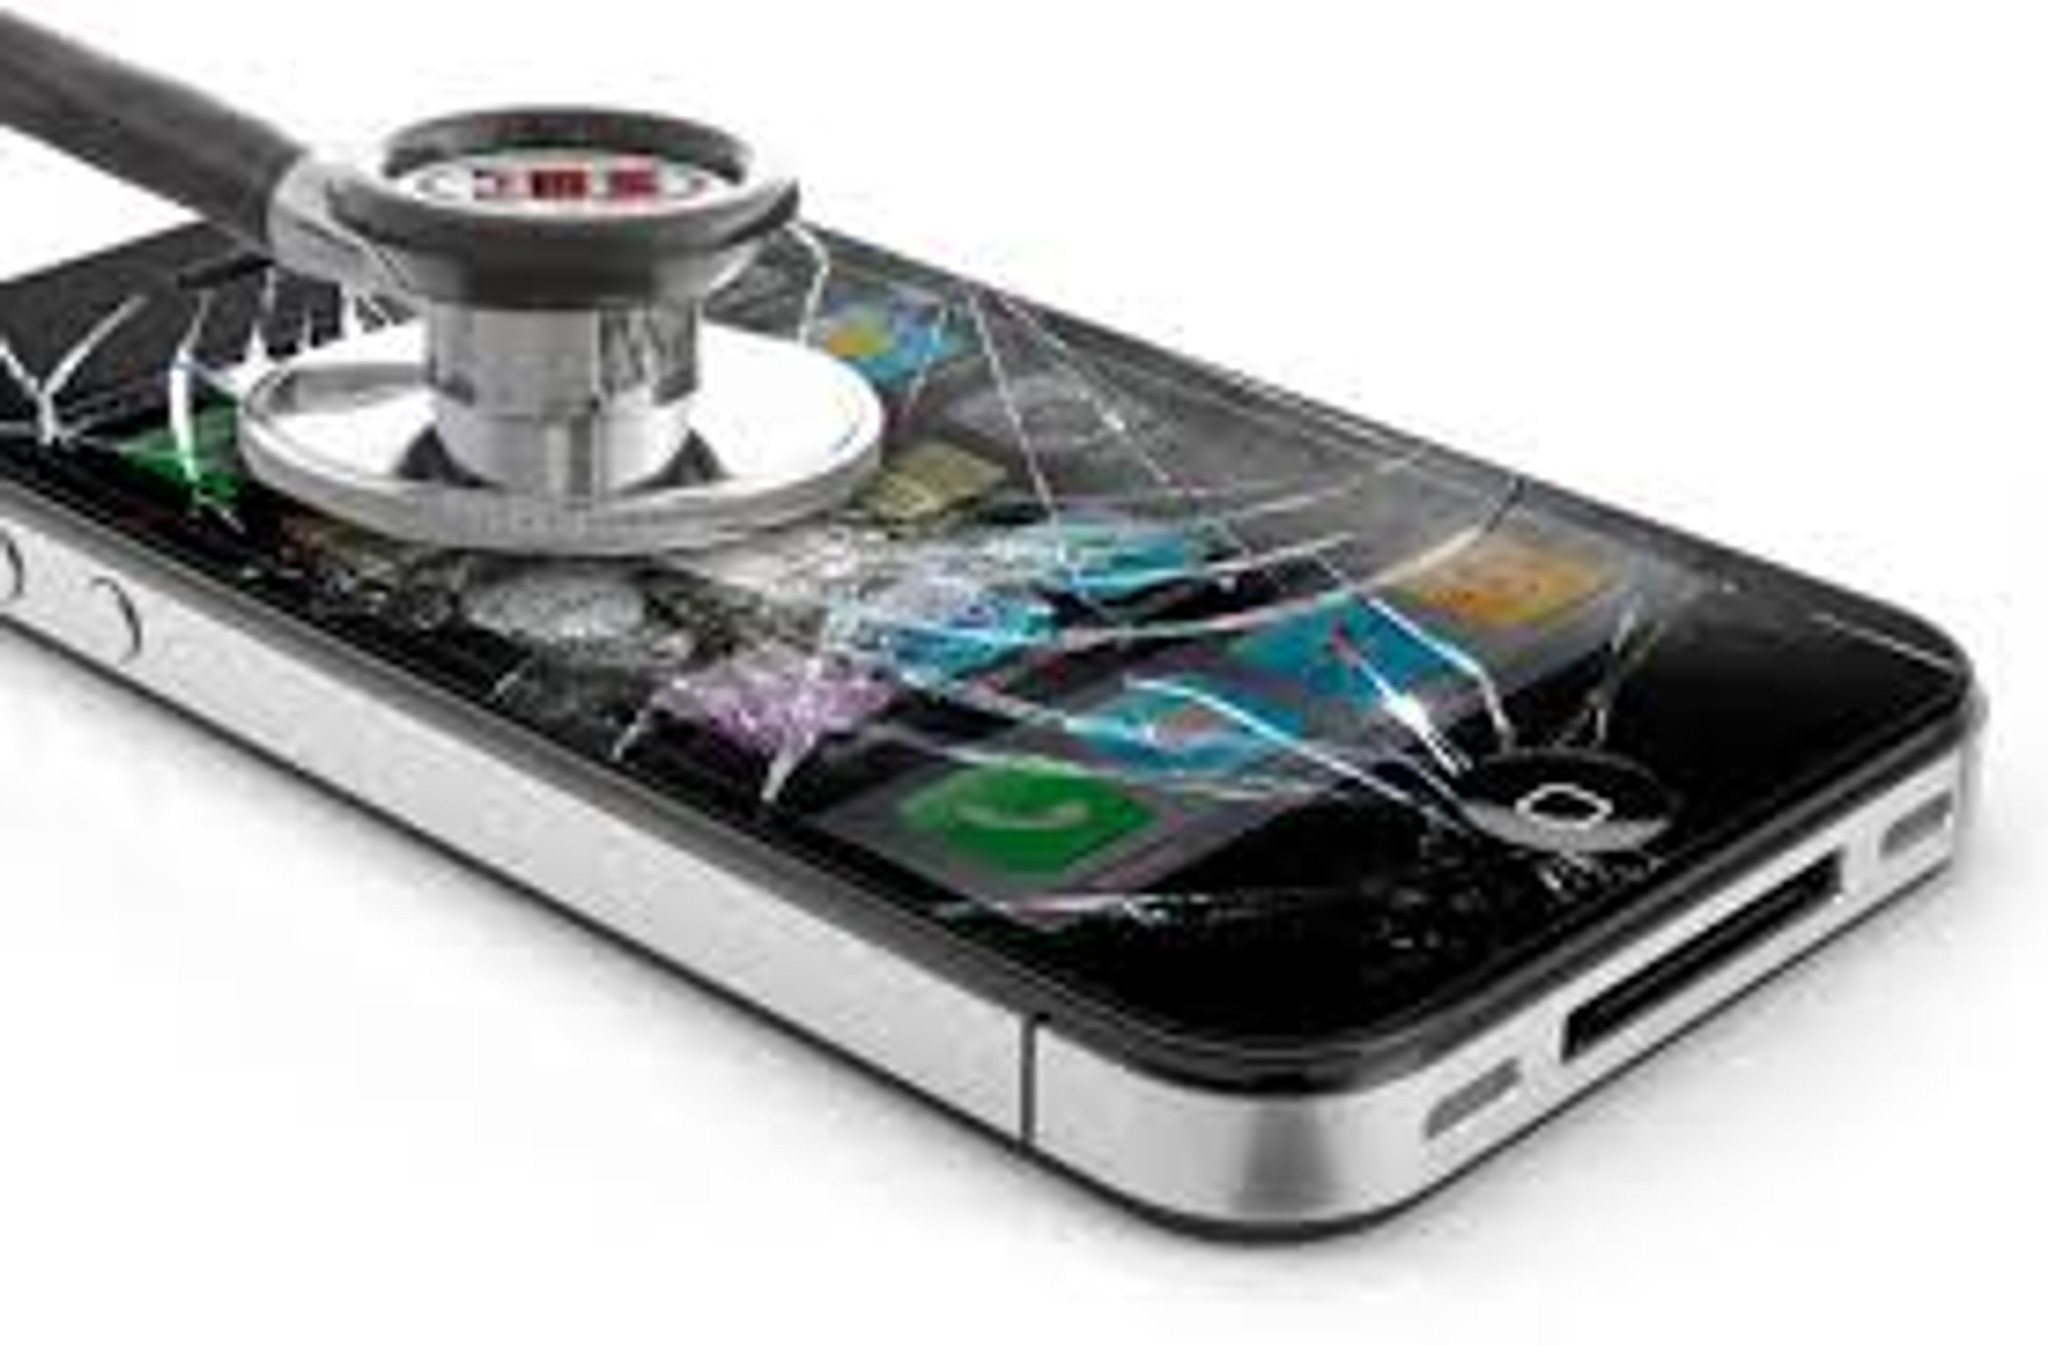 Mobile Phone Repair Service In Pakistan